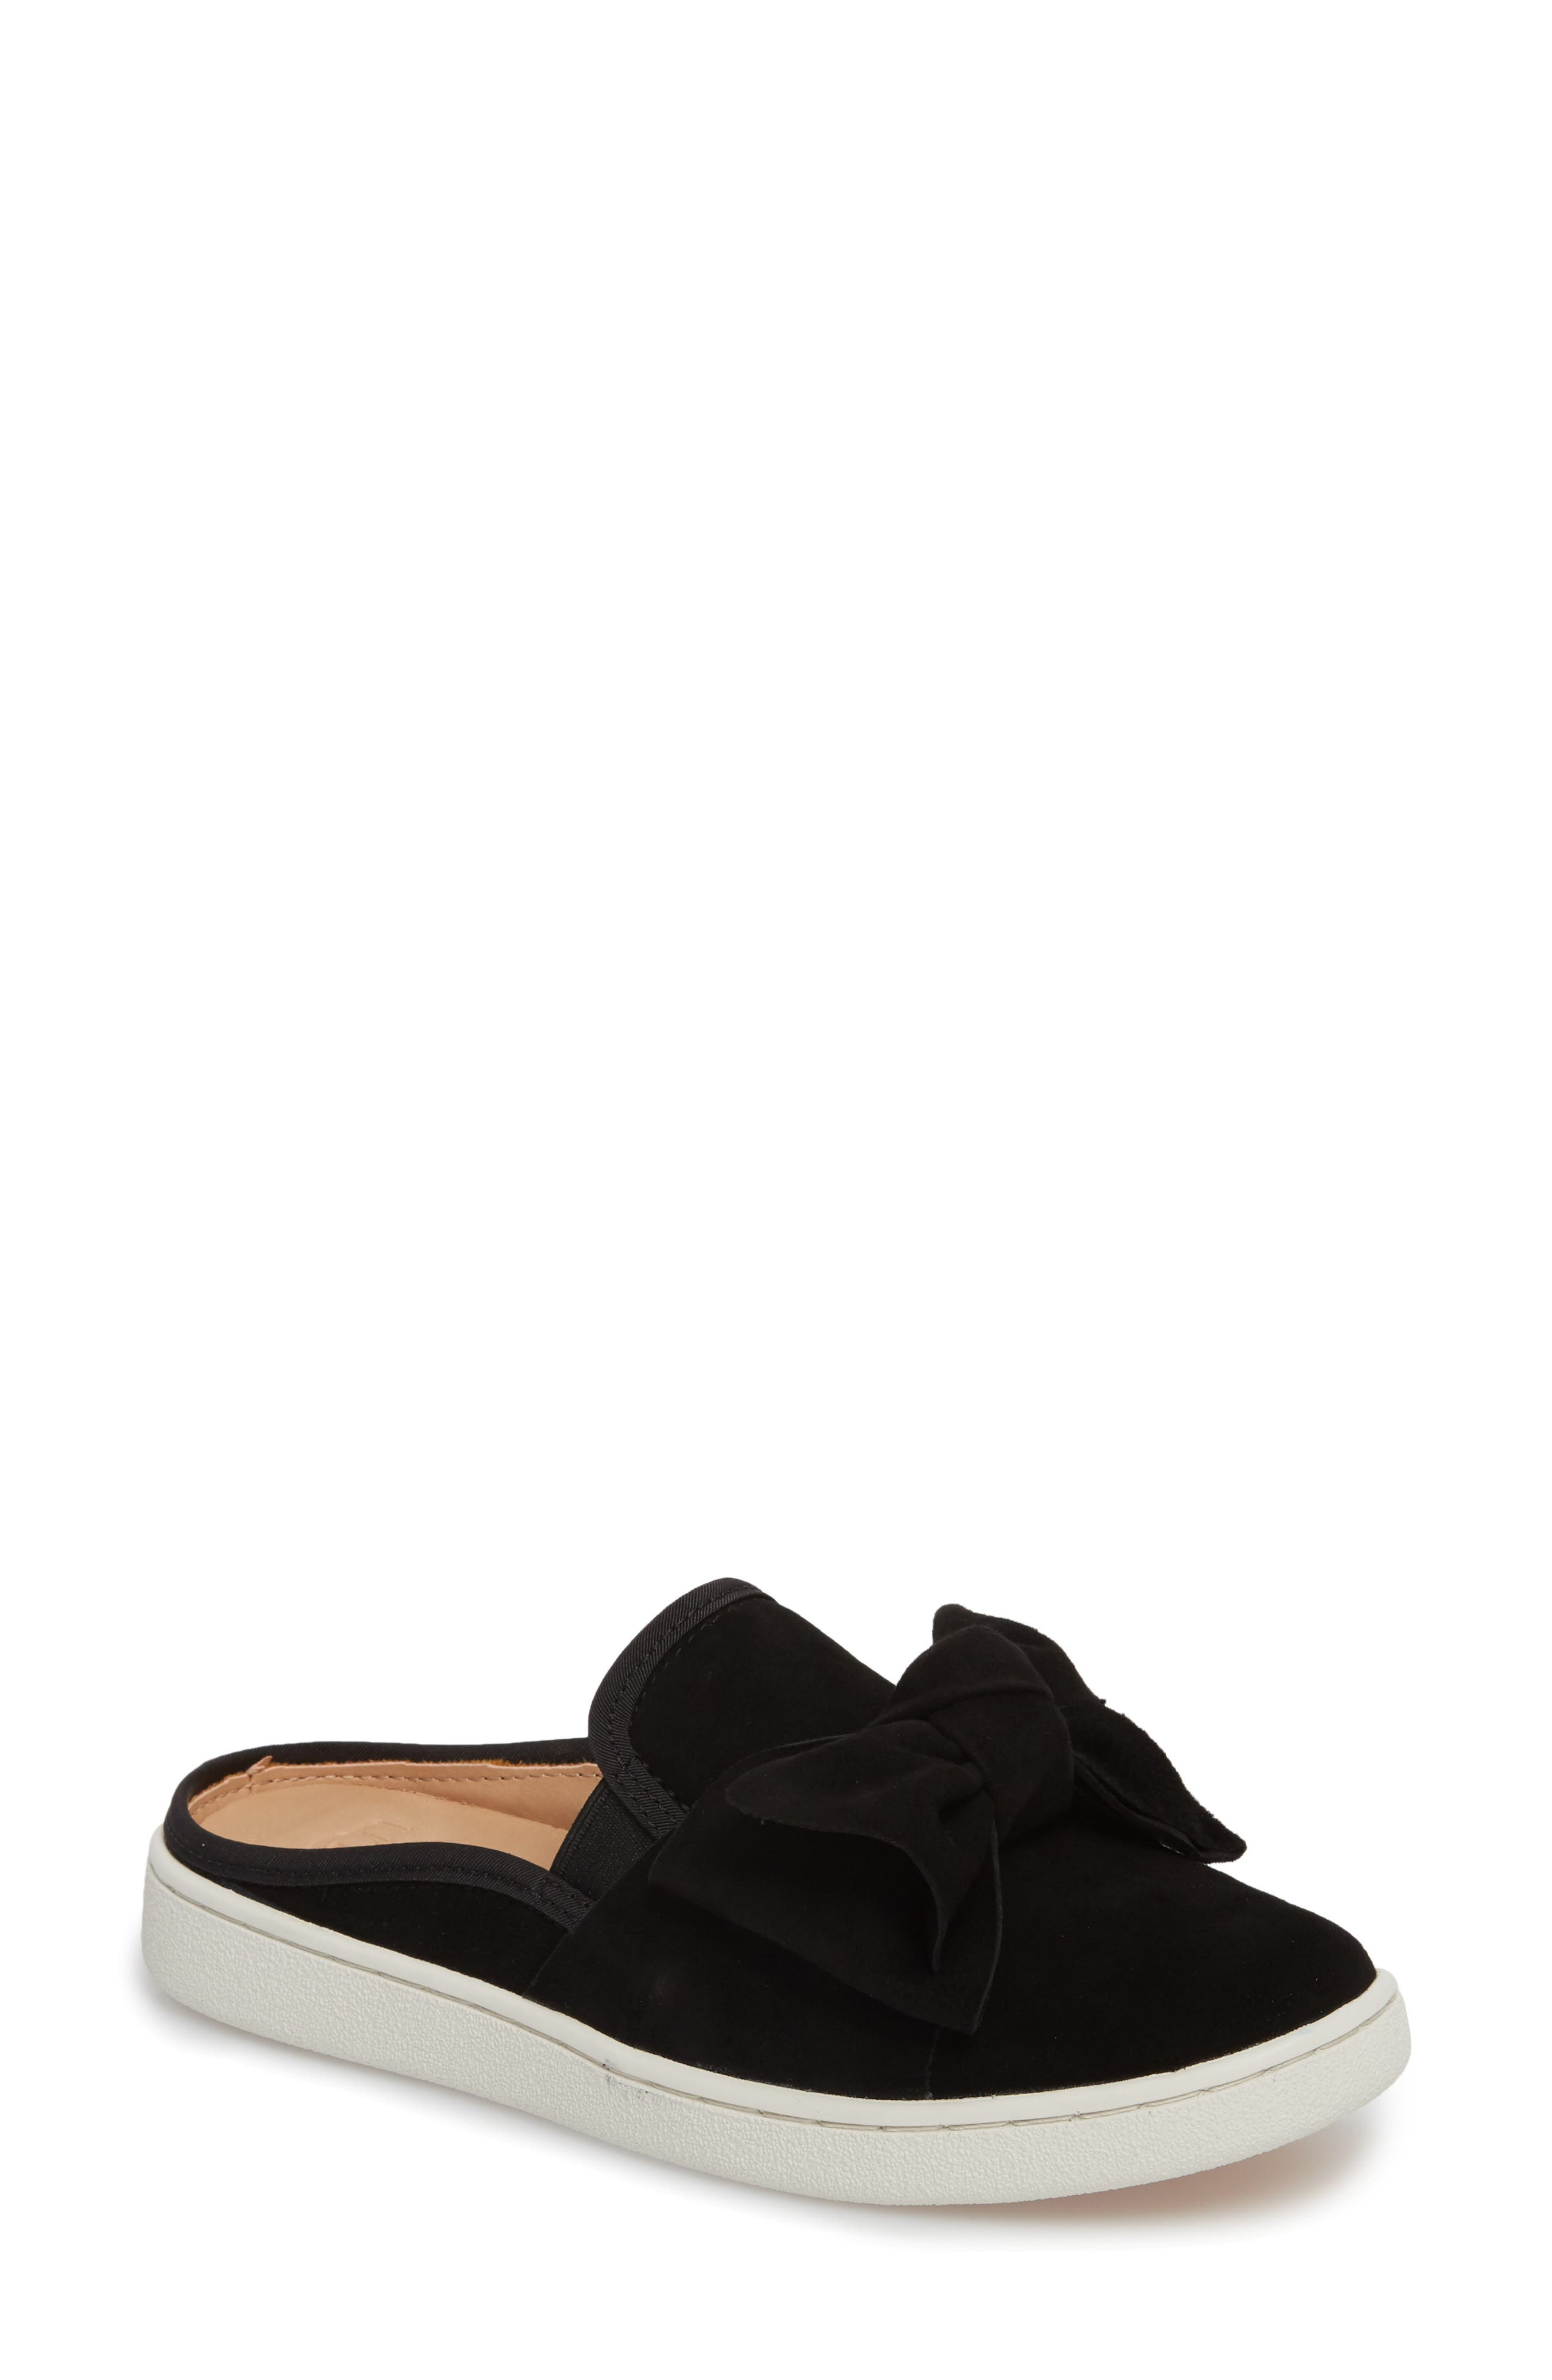 Luci Bow Sneaker Mule,                         Main,                         color, 001